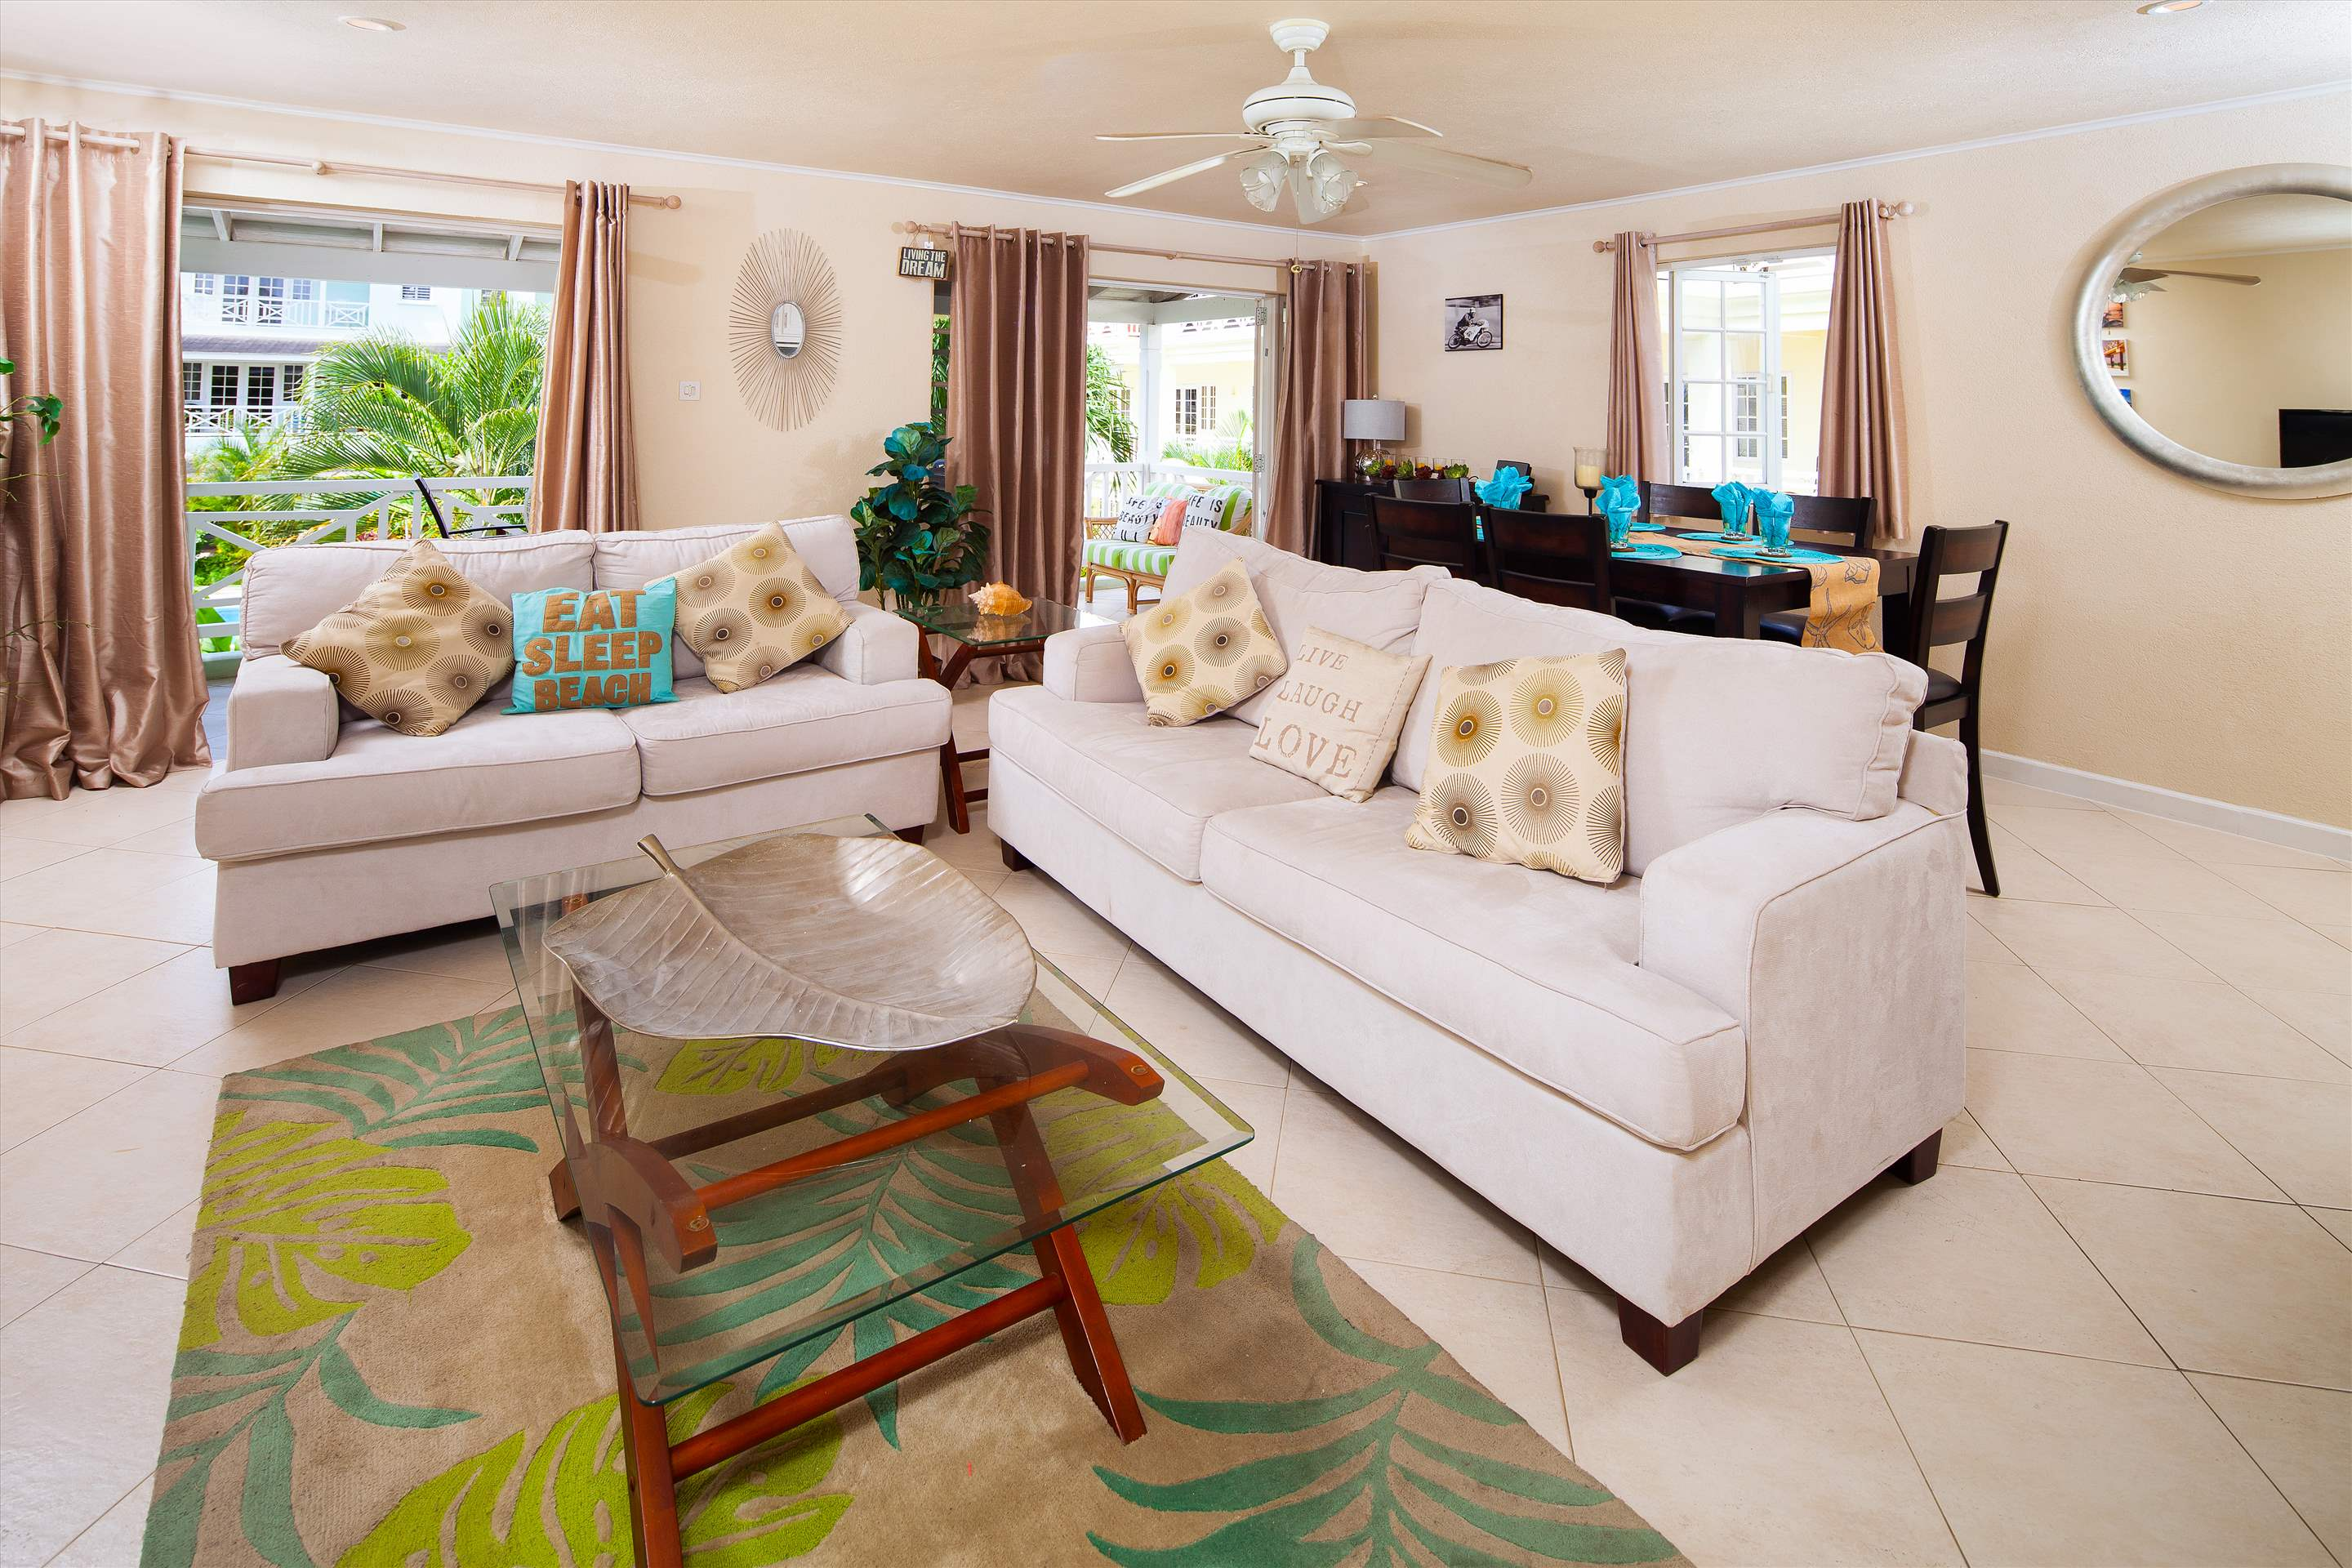 Margate Gardens 4, 3 bedroom, 3 bedroom apartment in St. Lawrence Gap & South Coast, Barbados Photo #5